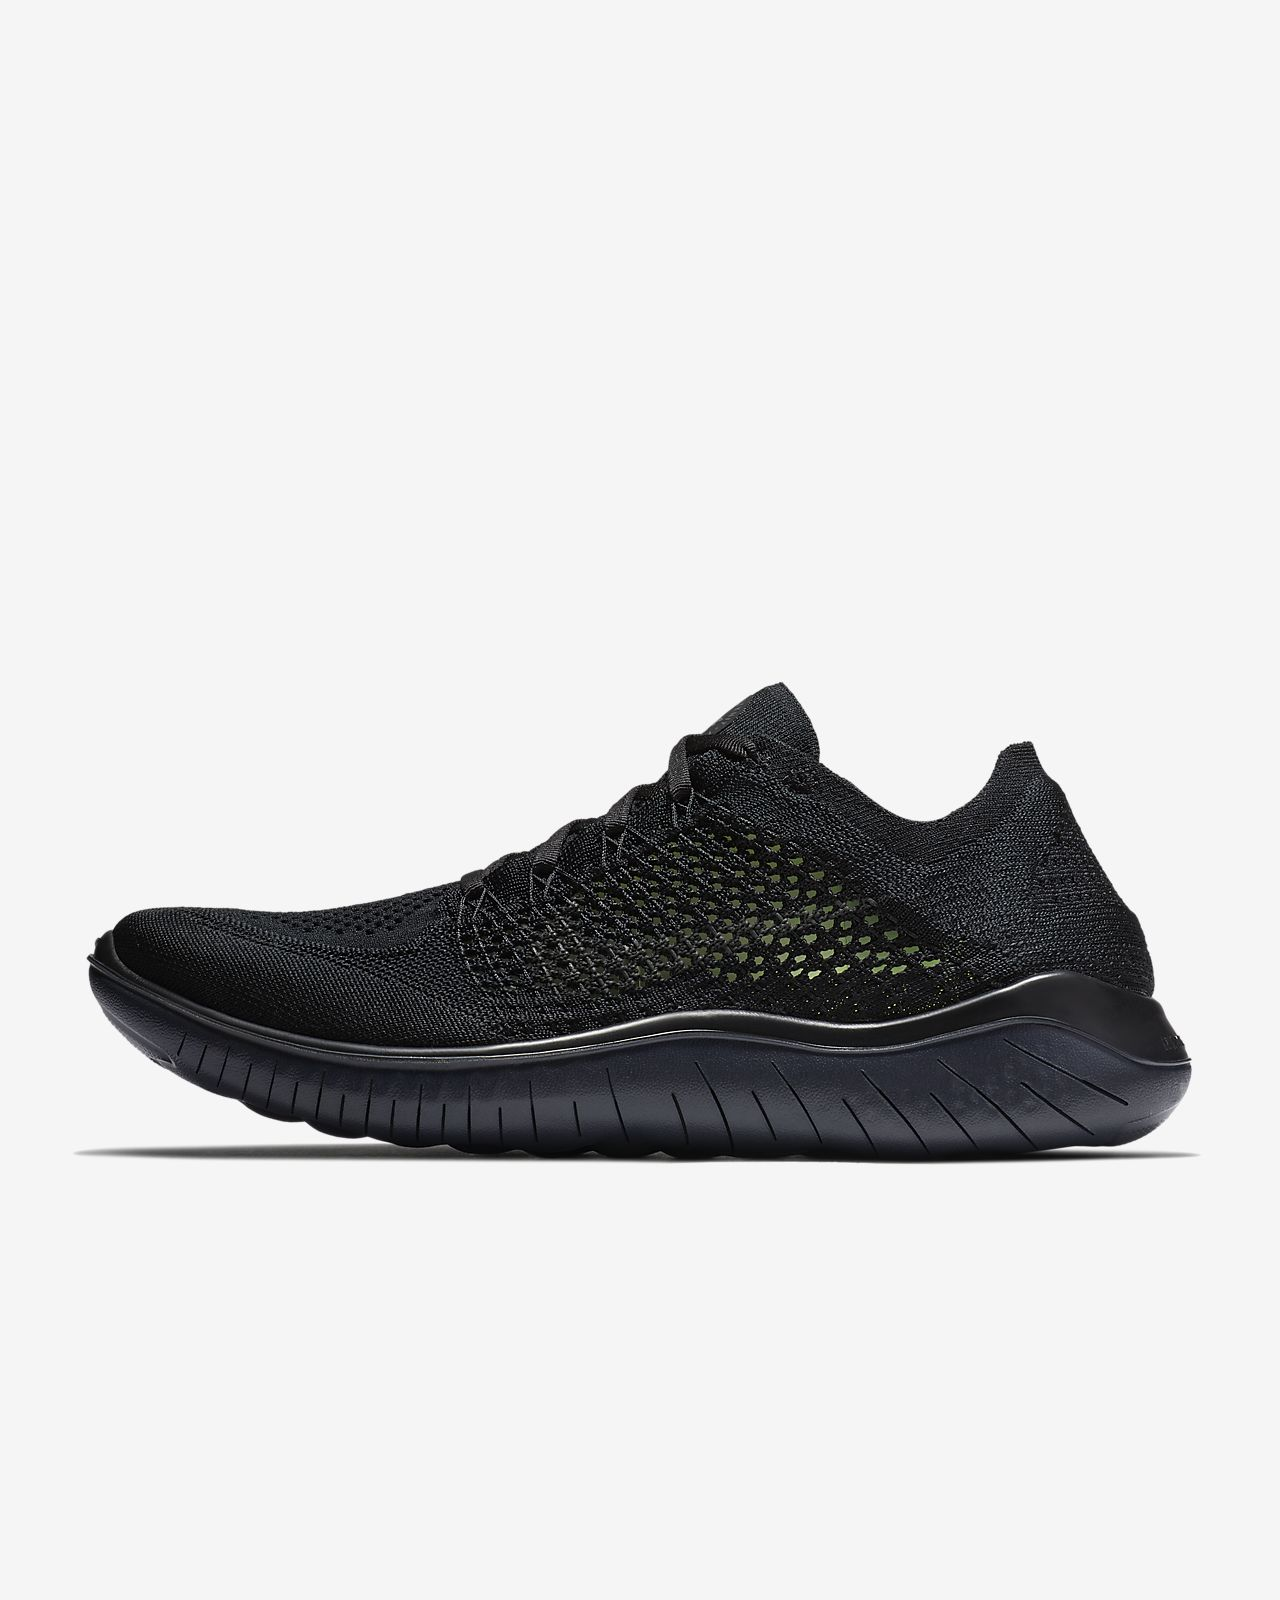 78432919ae9 clearance nike free flyknit 3.0 mens black not working 31819 76d8a